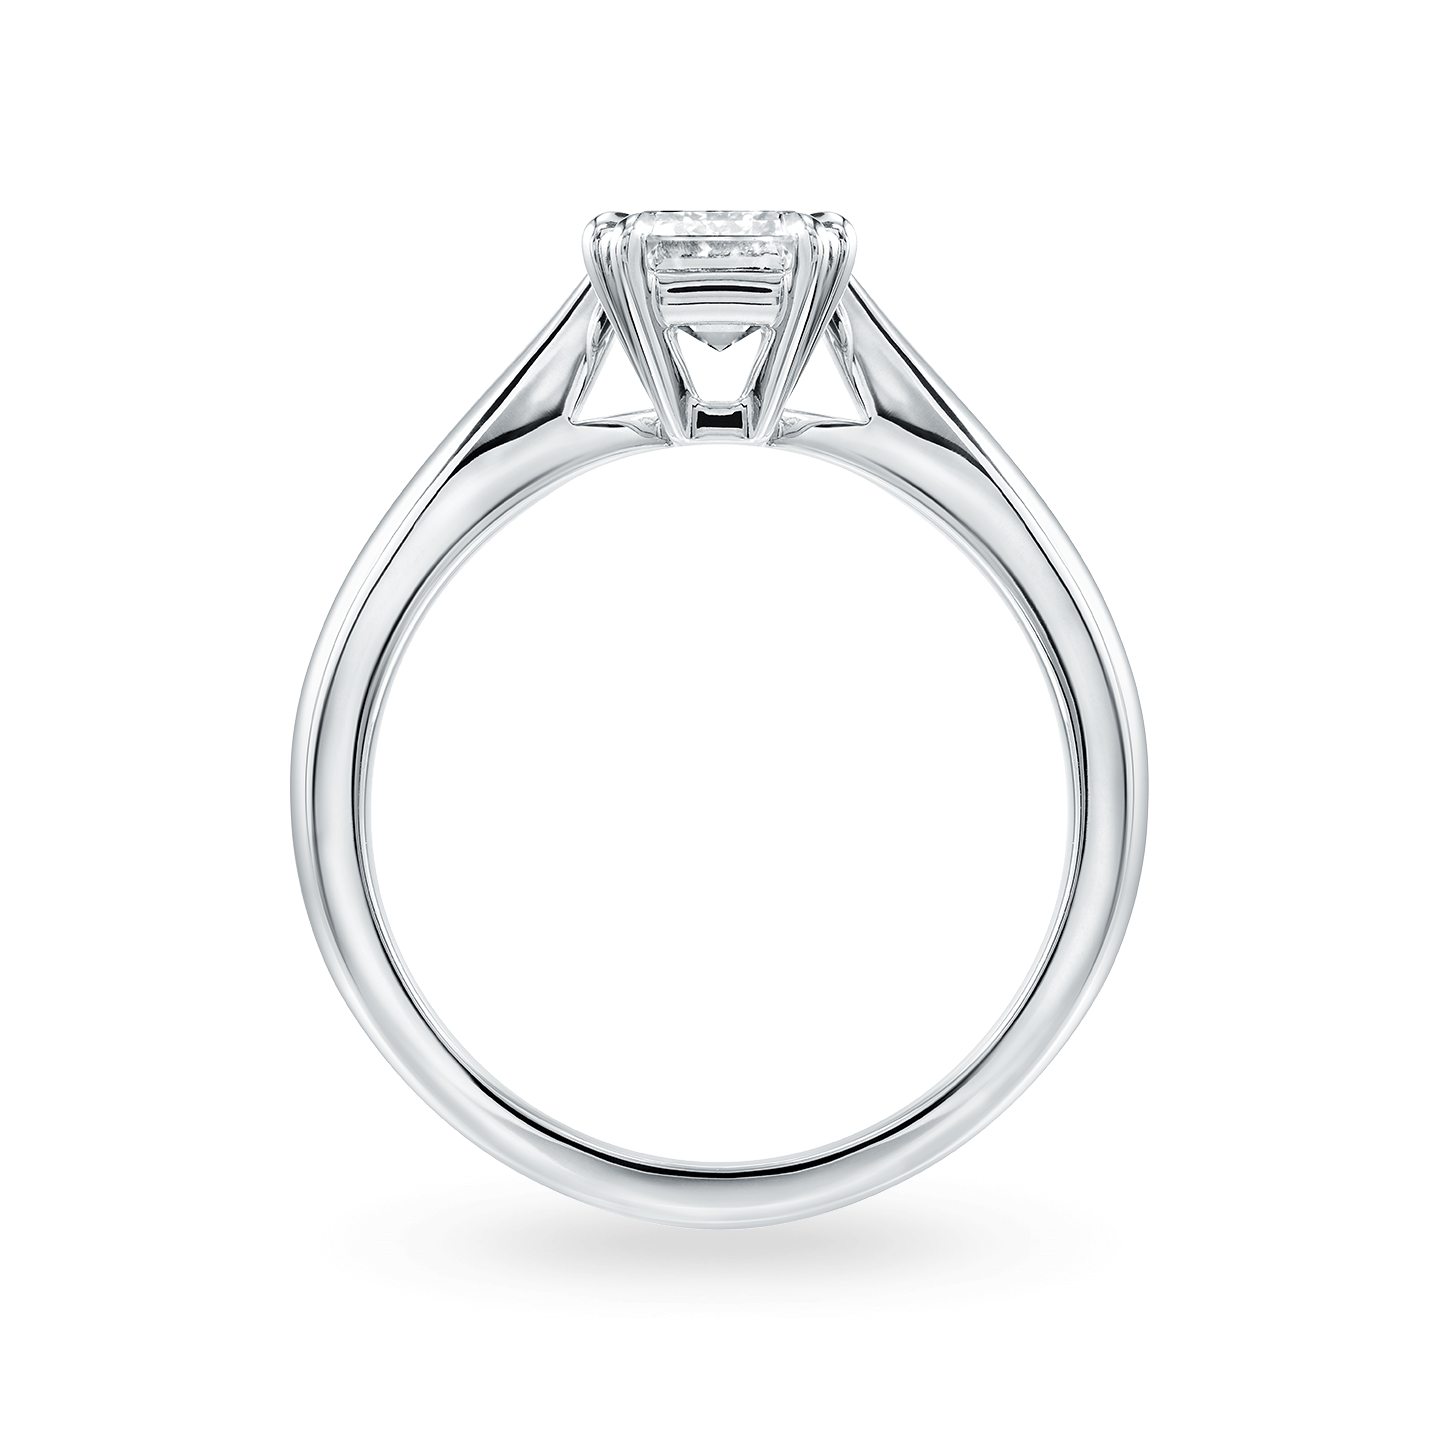 Solitaire Emerald-Cut Engagement Ring, Product Image 2